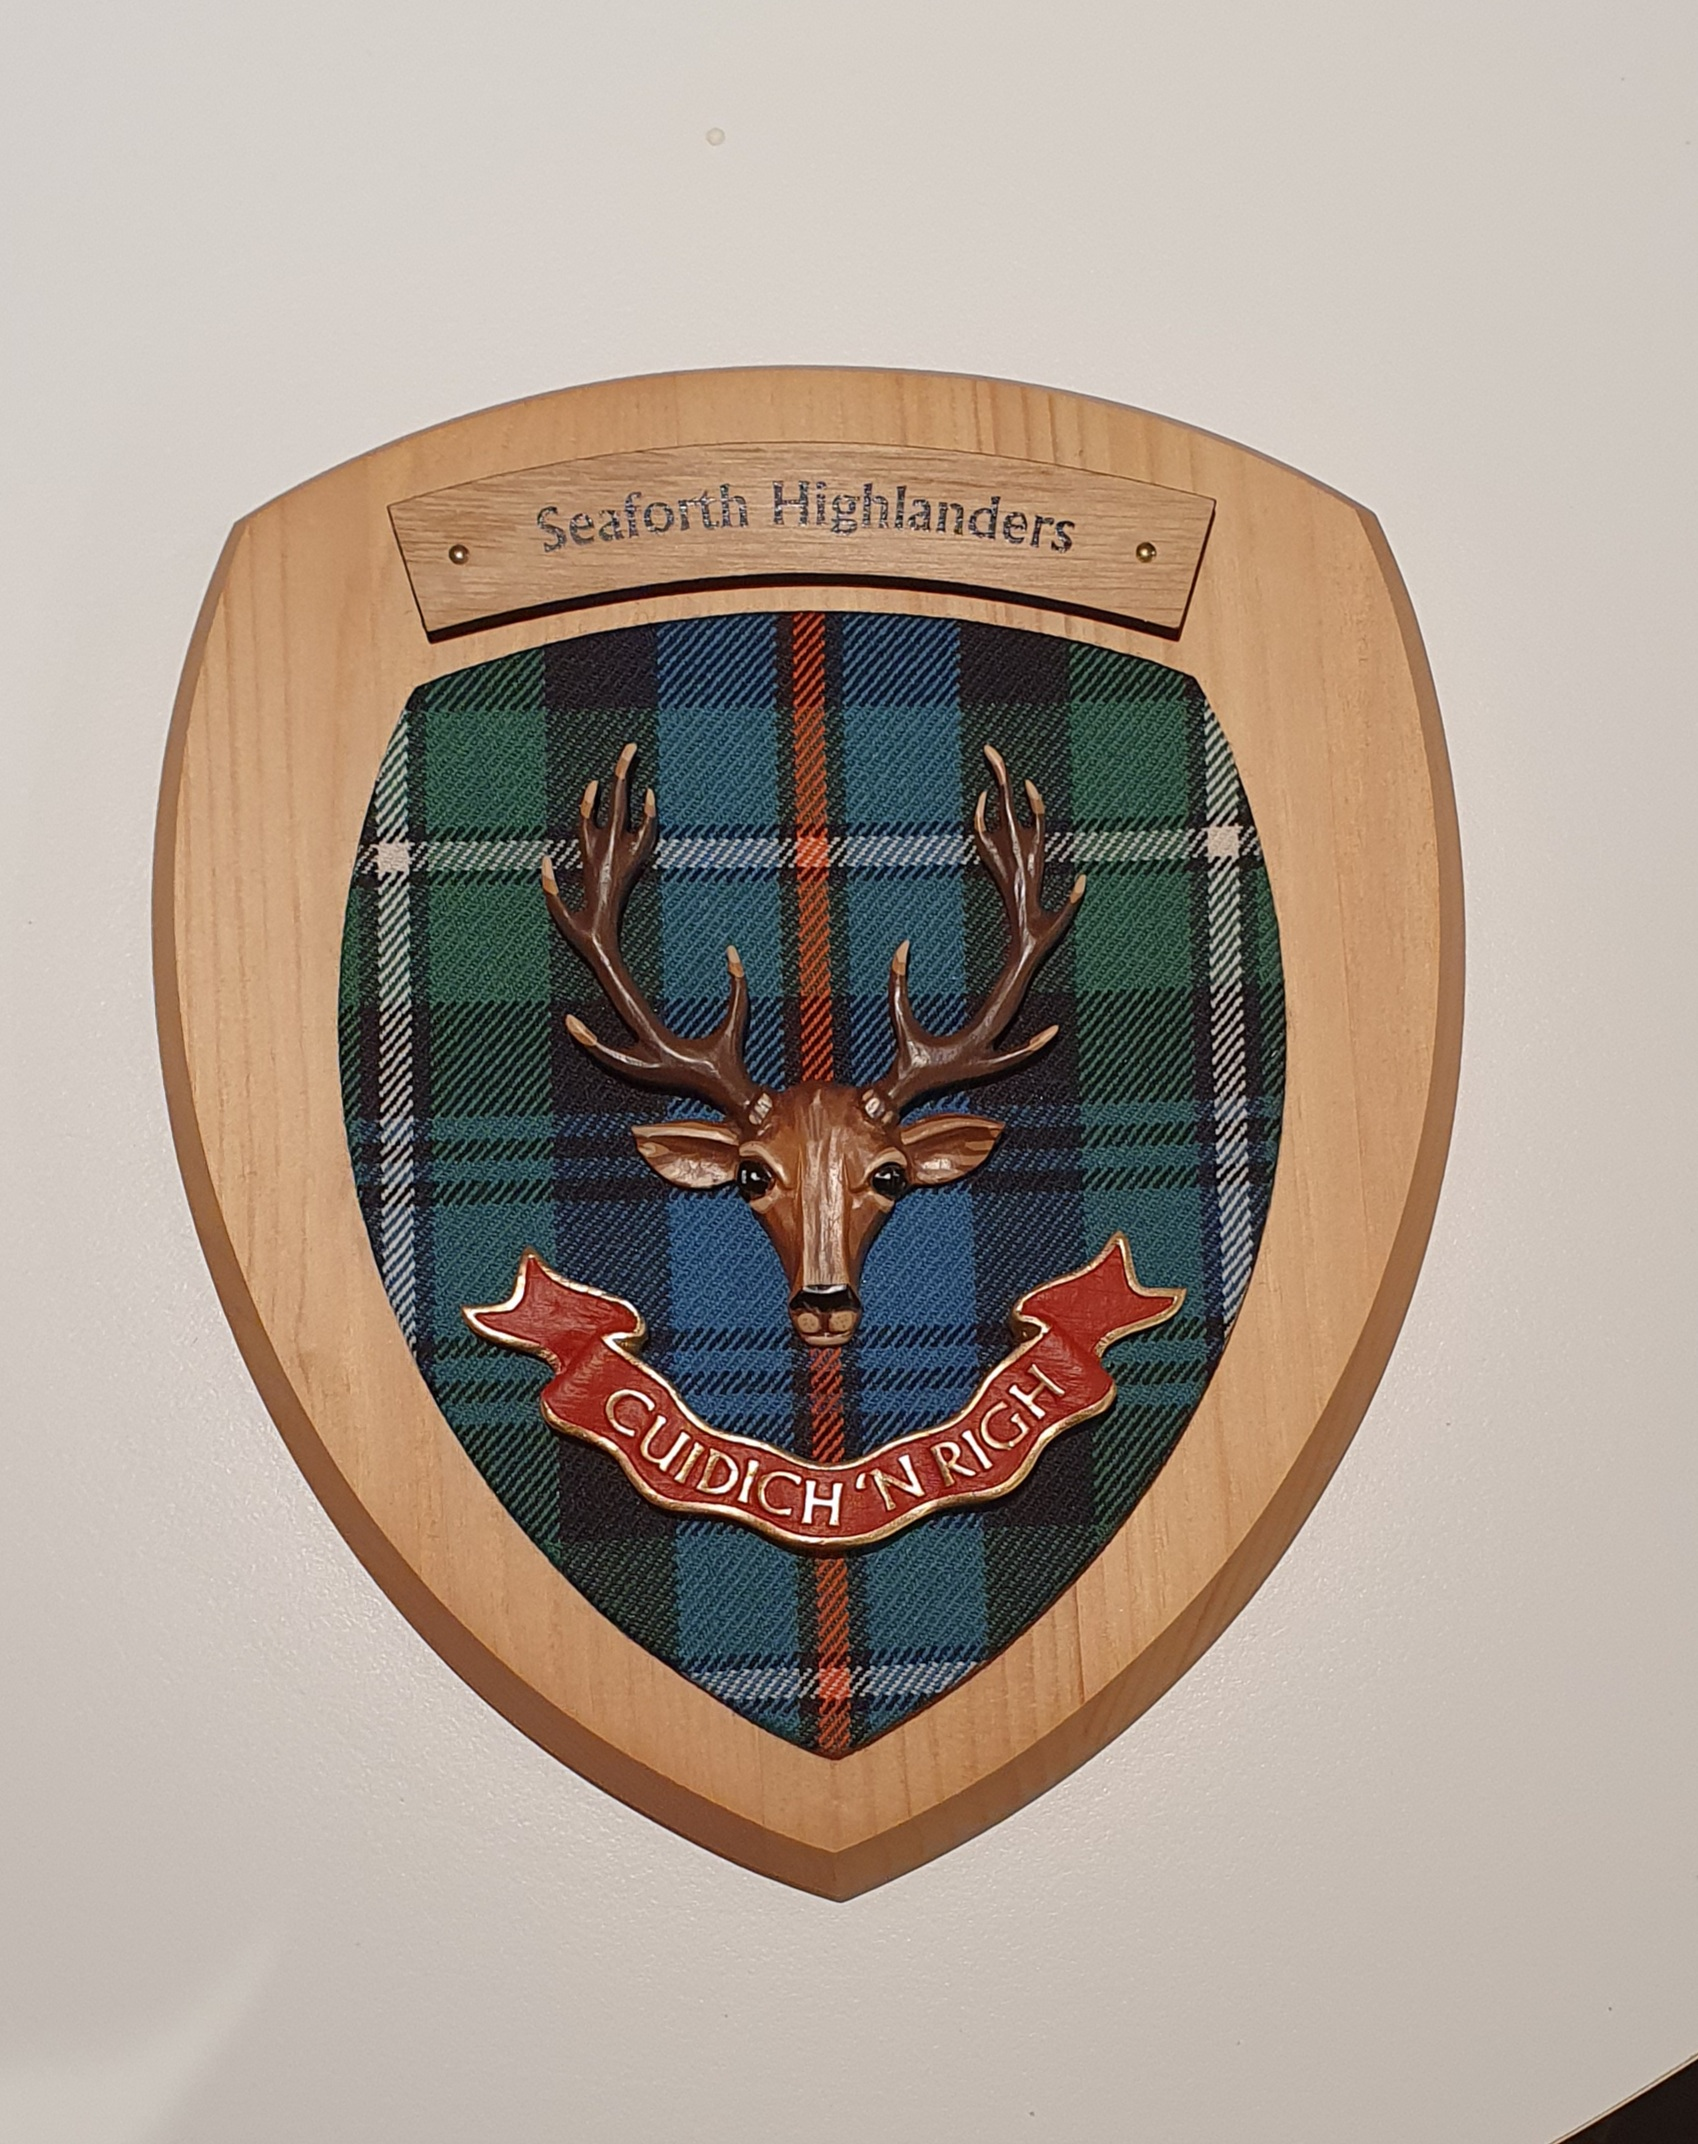 Plaque - Seaforth Highlanders Colour